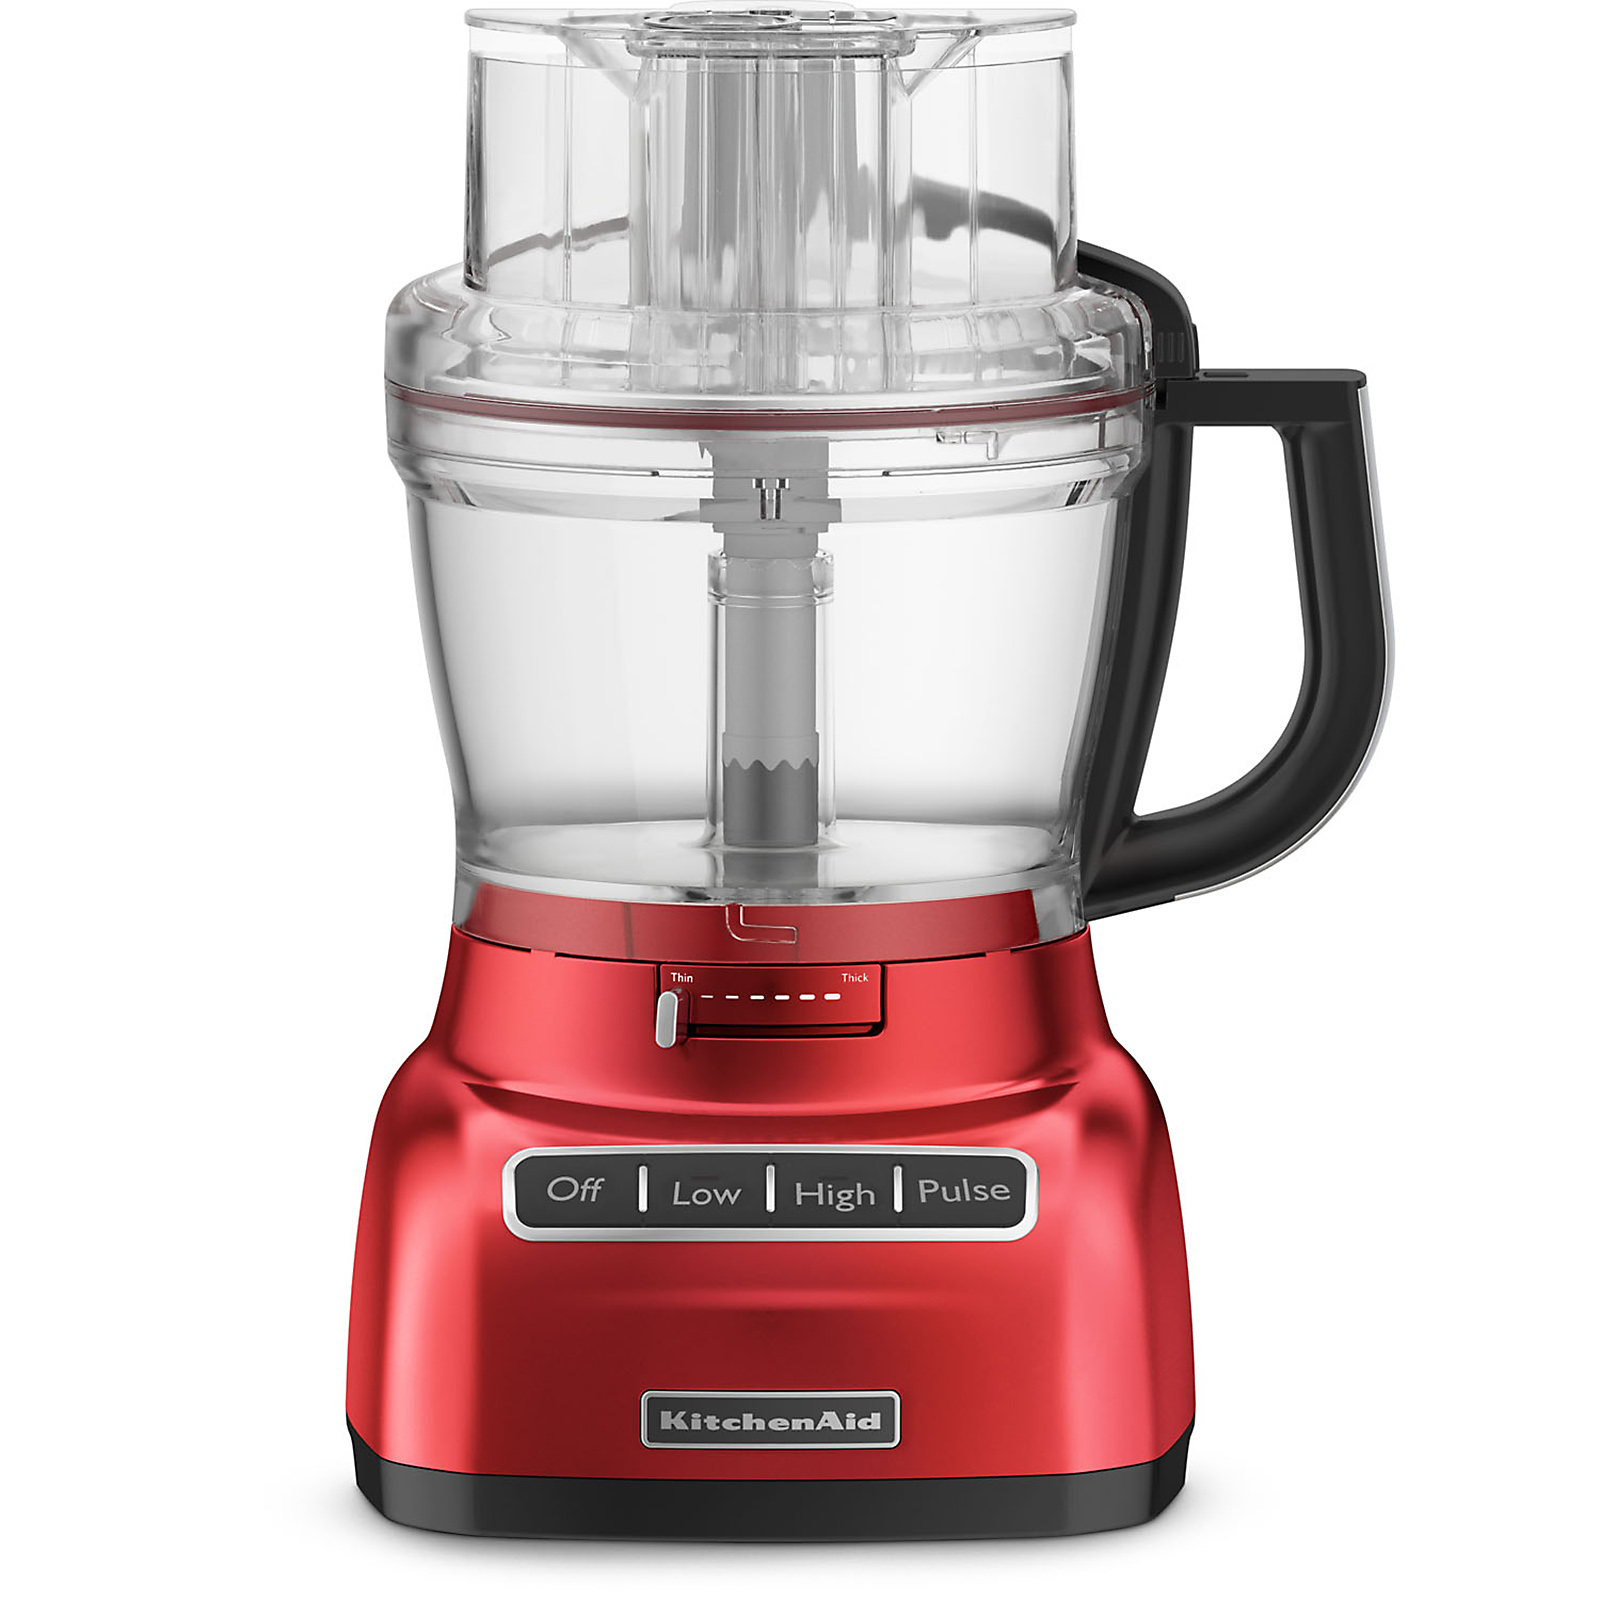 Kitchenaid Kfp1333er 13-cup Food Processor Empire Red